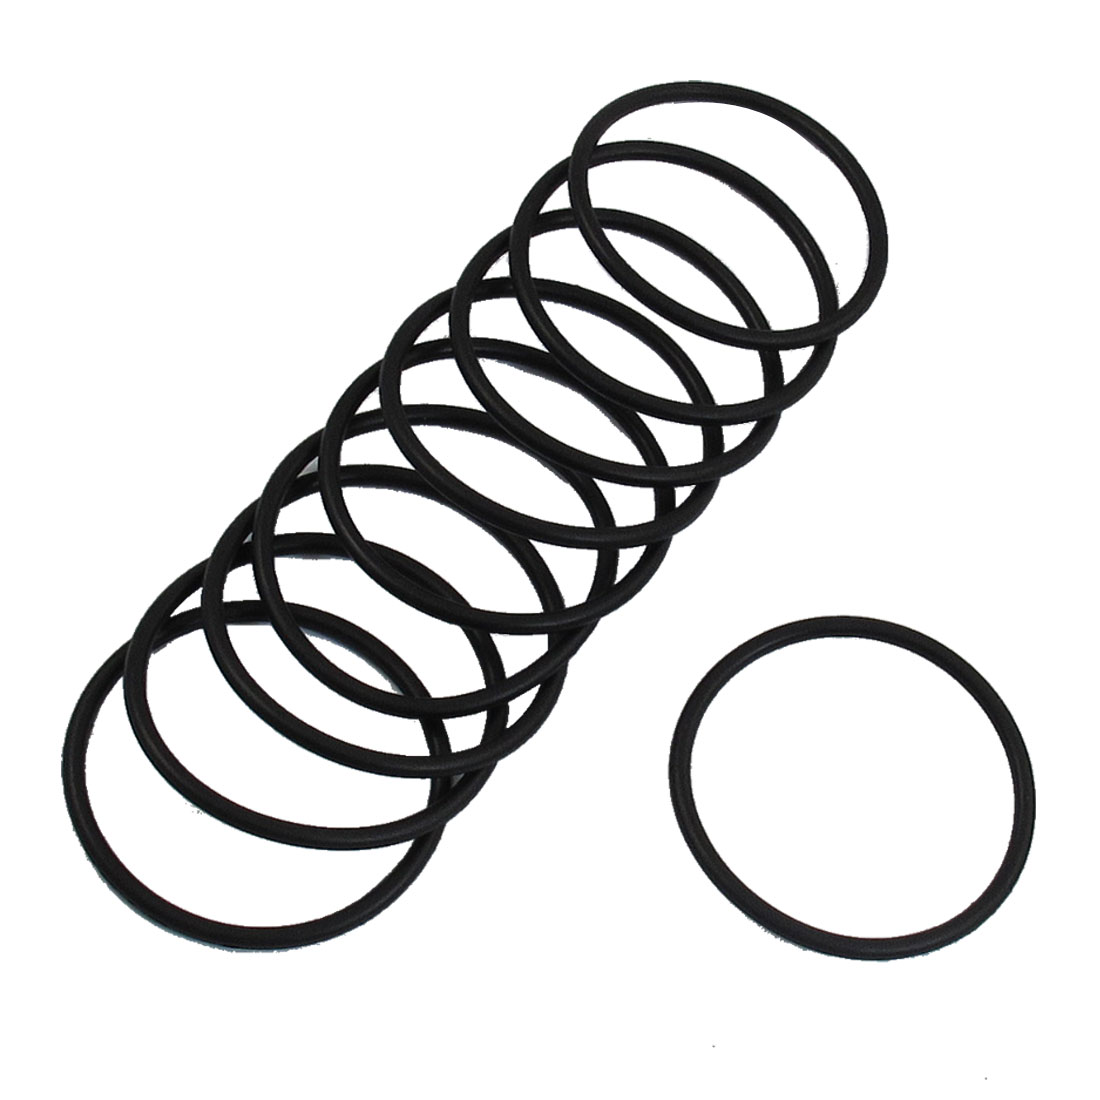 10 Pcs 42mm Outside Dia 2.4mm Thick Rubber O Rings Gaskets Black